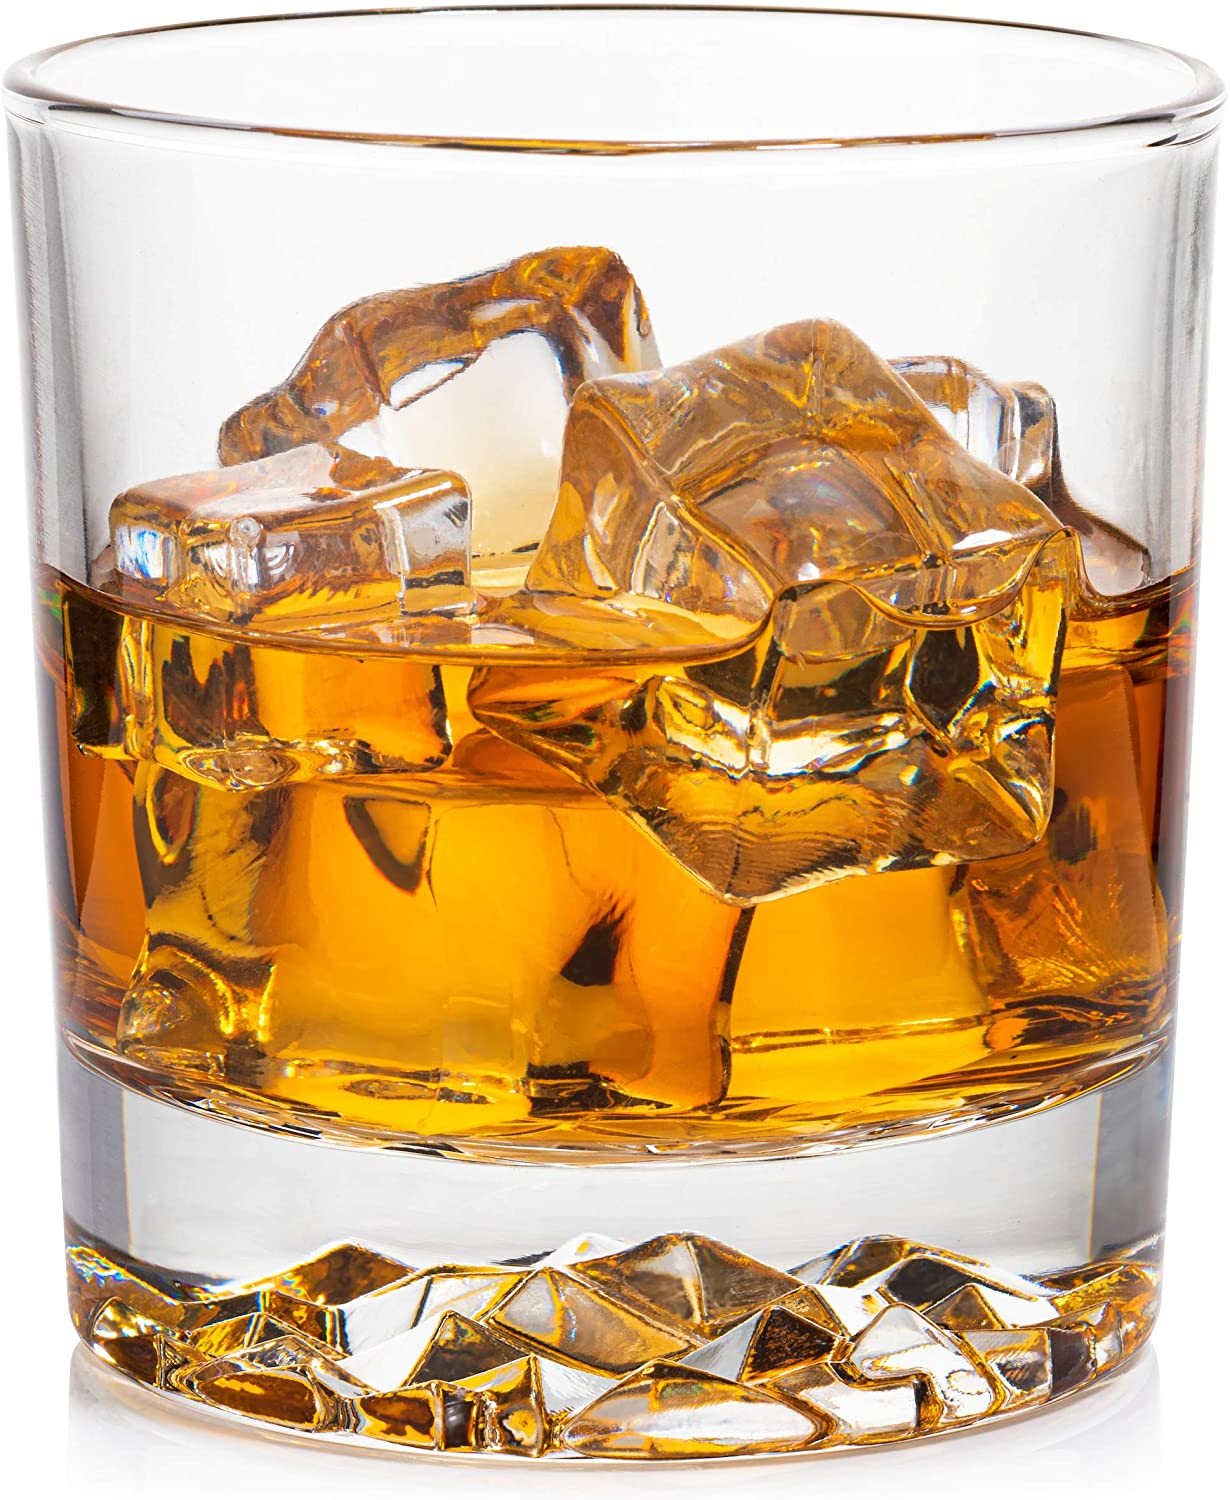 OBSIDIAN All items free shipping free shipping Whiskey Glasses Set of Imprin Mountain with 4 Brilliant